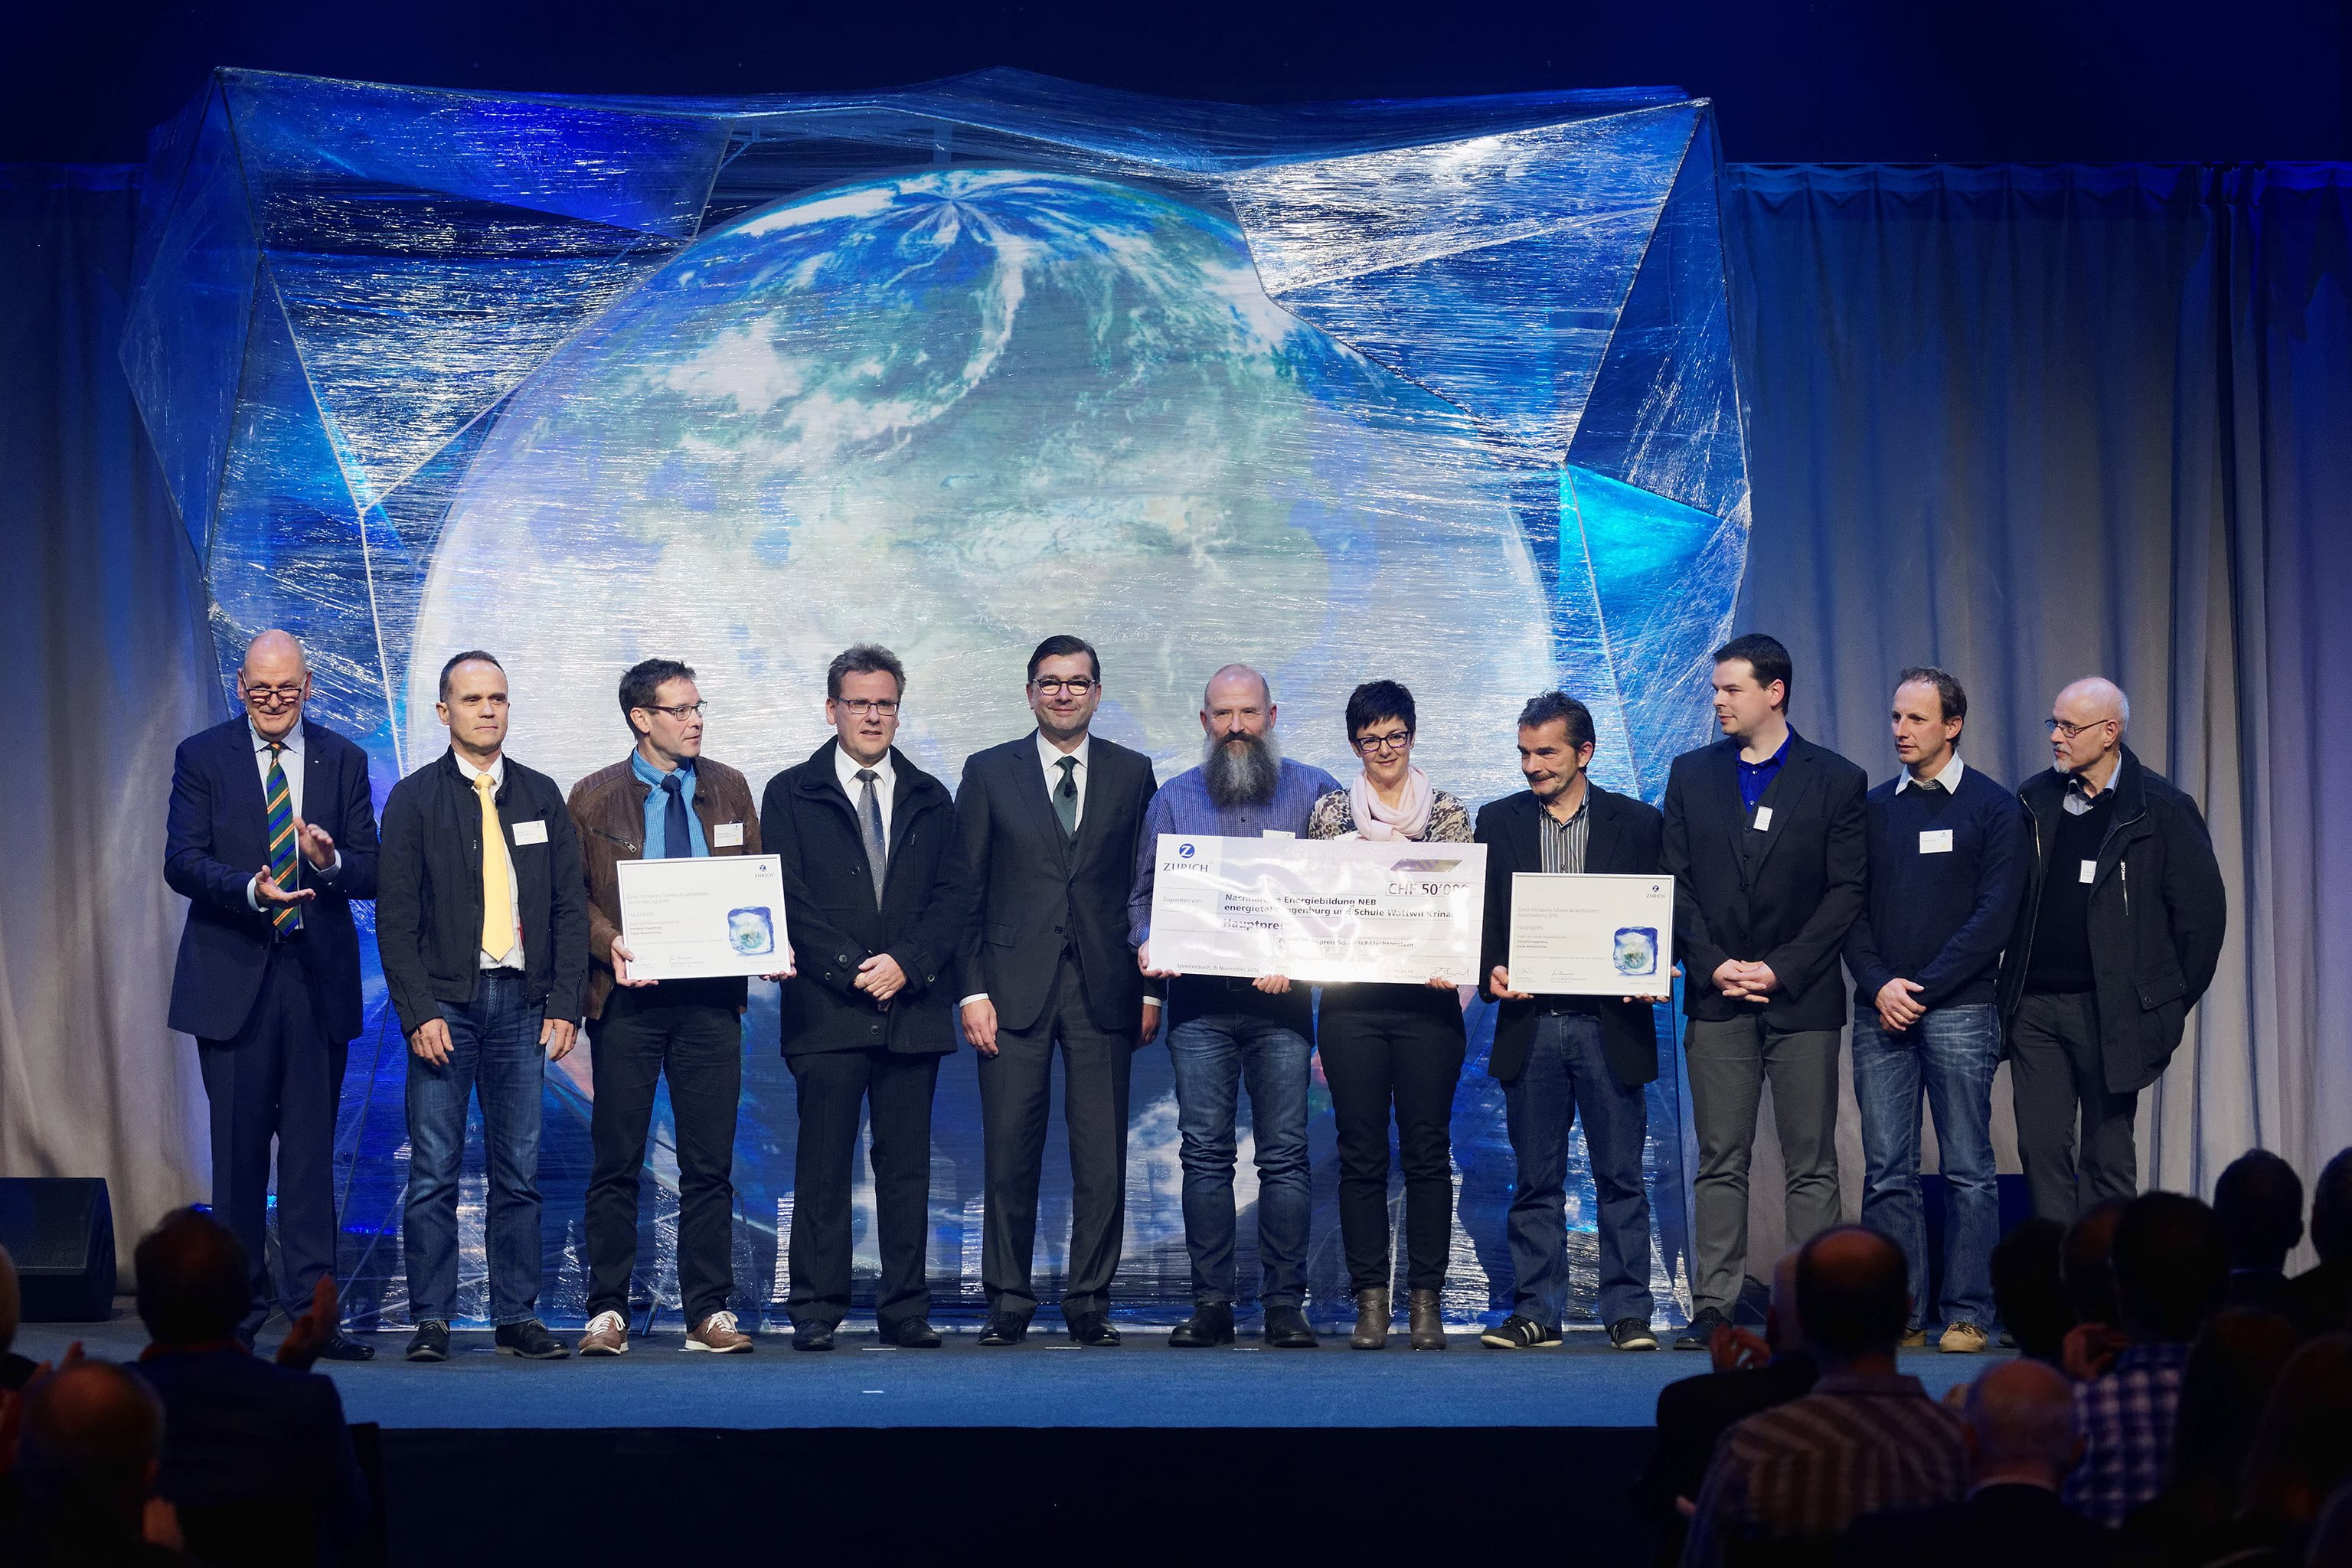 Zurich Climate Prize 2016 - we congratulate the winners!